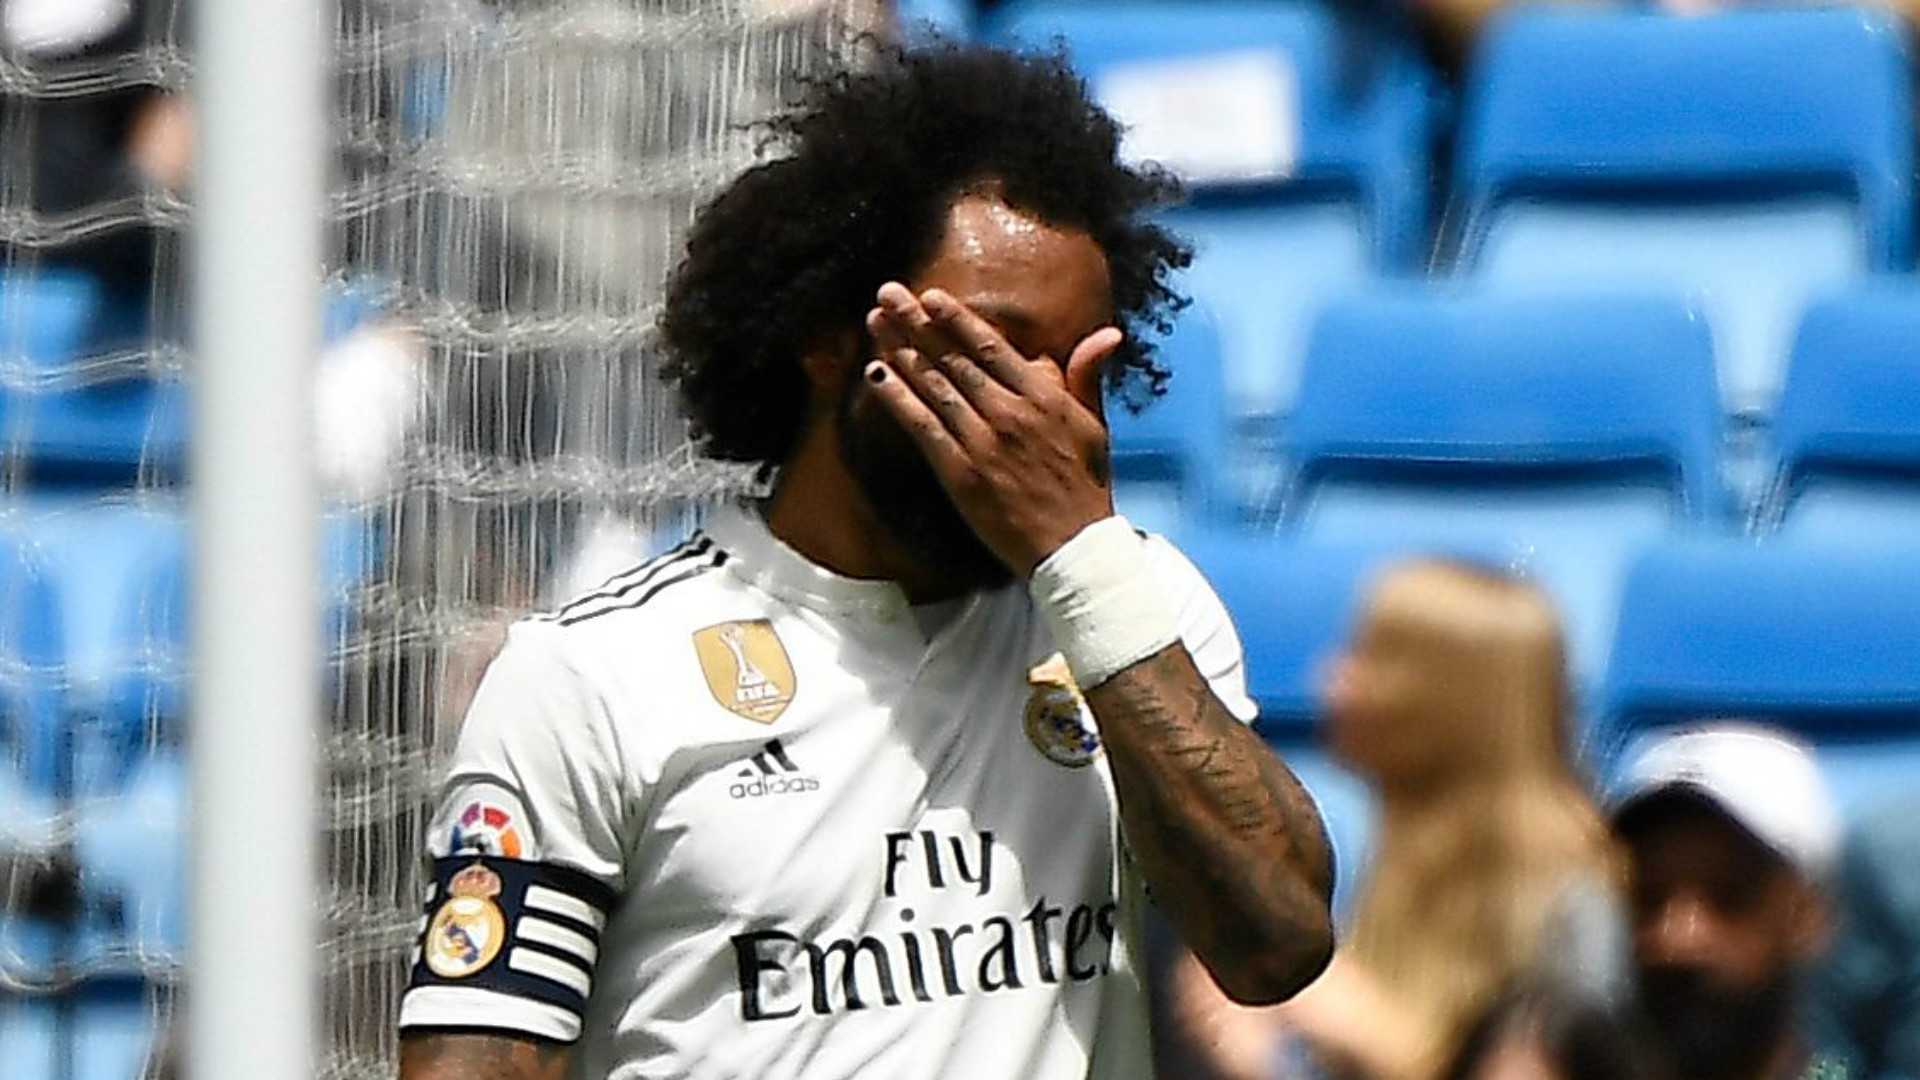 'We are the guilty ones' - Marcelo calls on Real Madrid players to take blame for miserable season